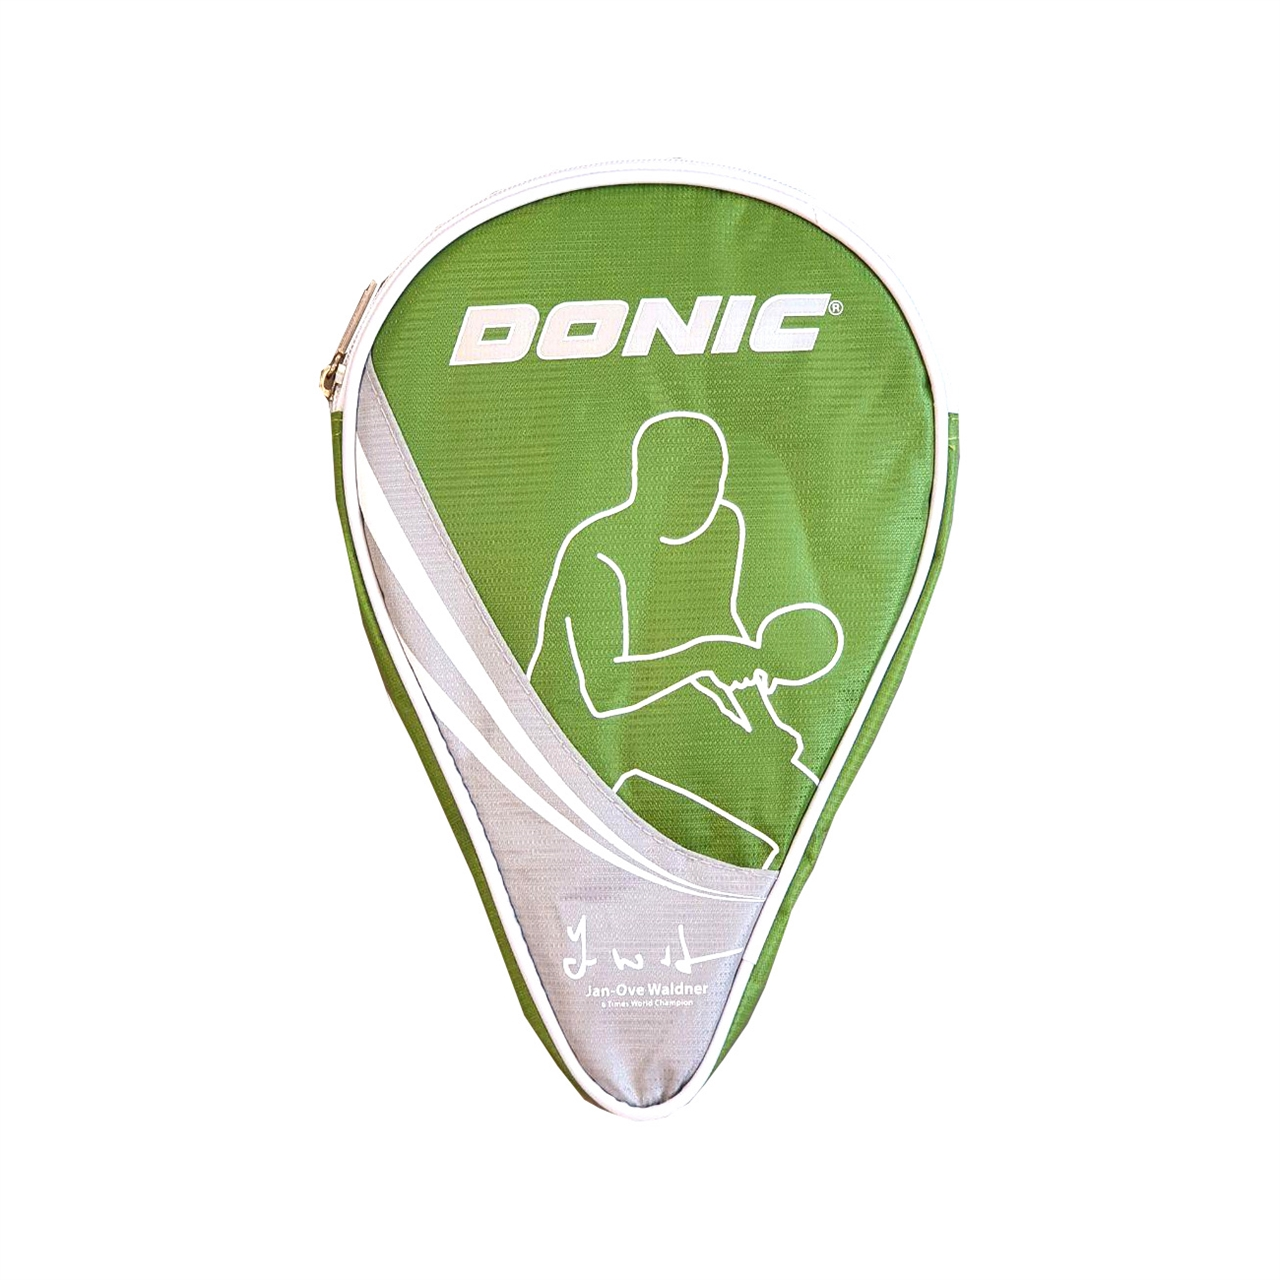 Donic Waldner Batcover